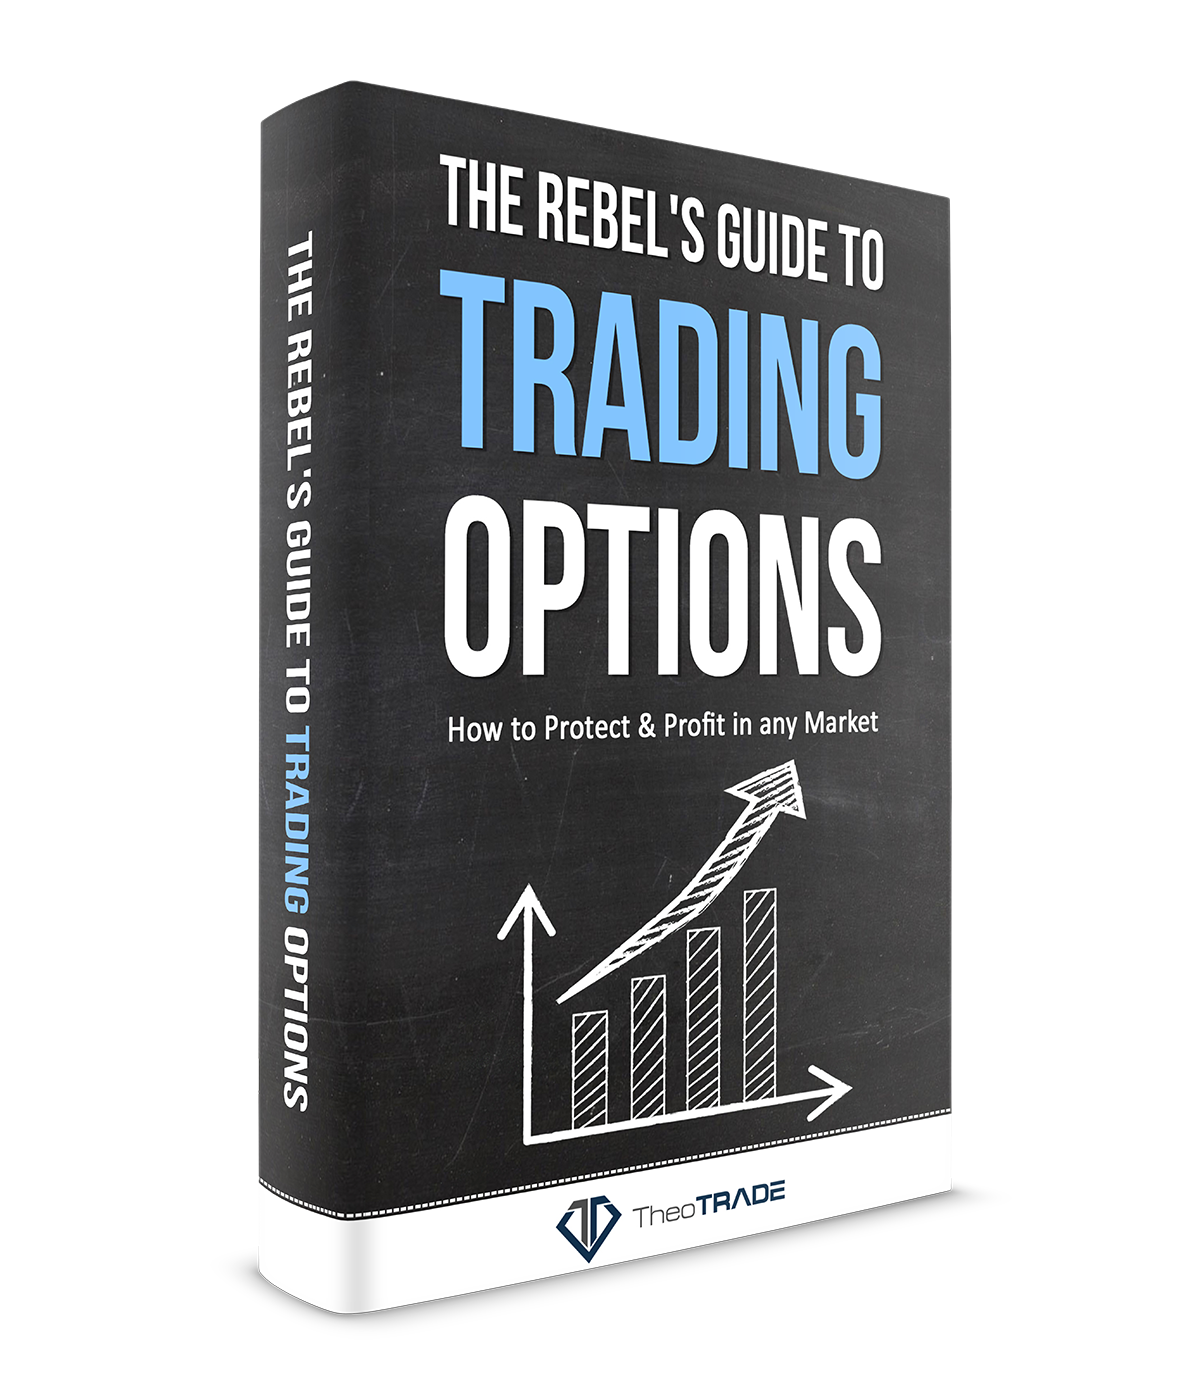 Vertical trade options